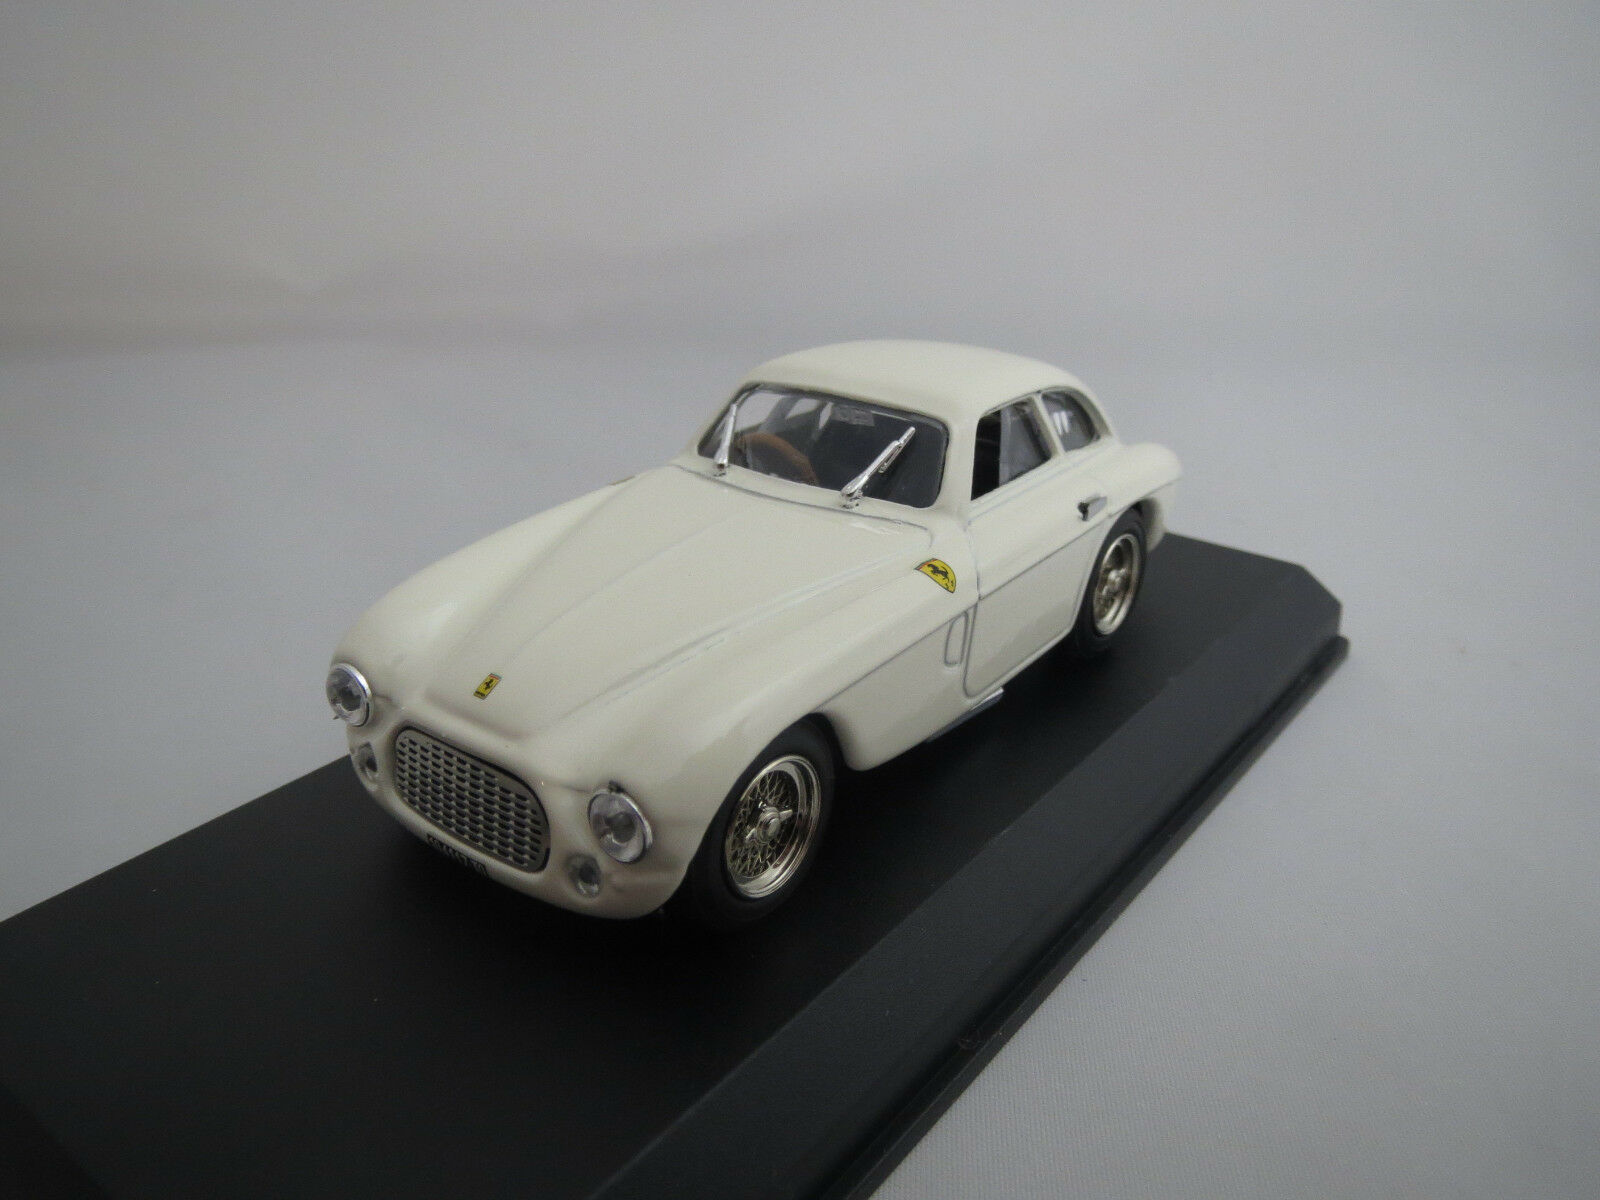 ART Model  Ferrari  166  MM  Stradale   1948-53   (white)  1 43  in OVP